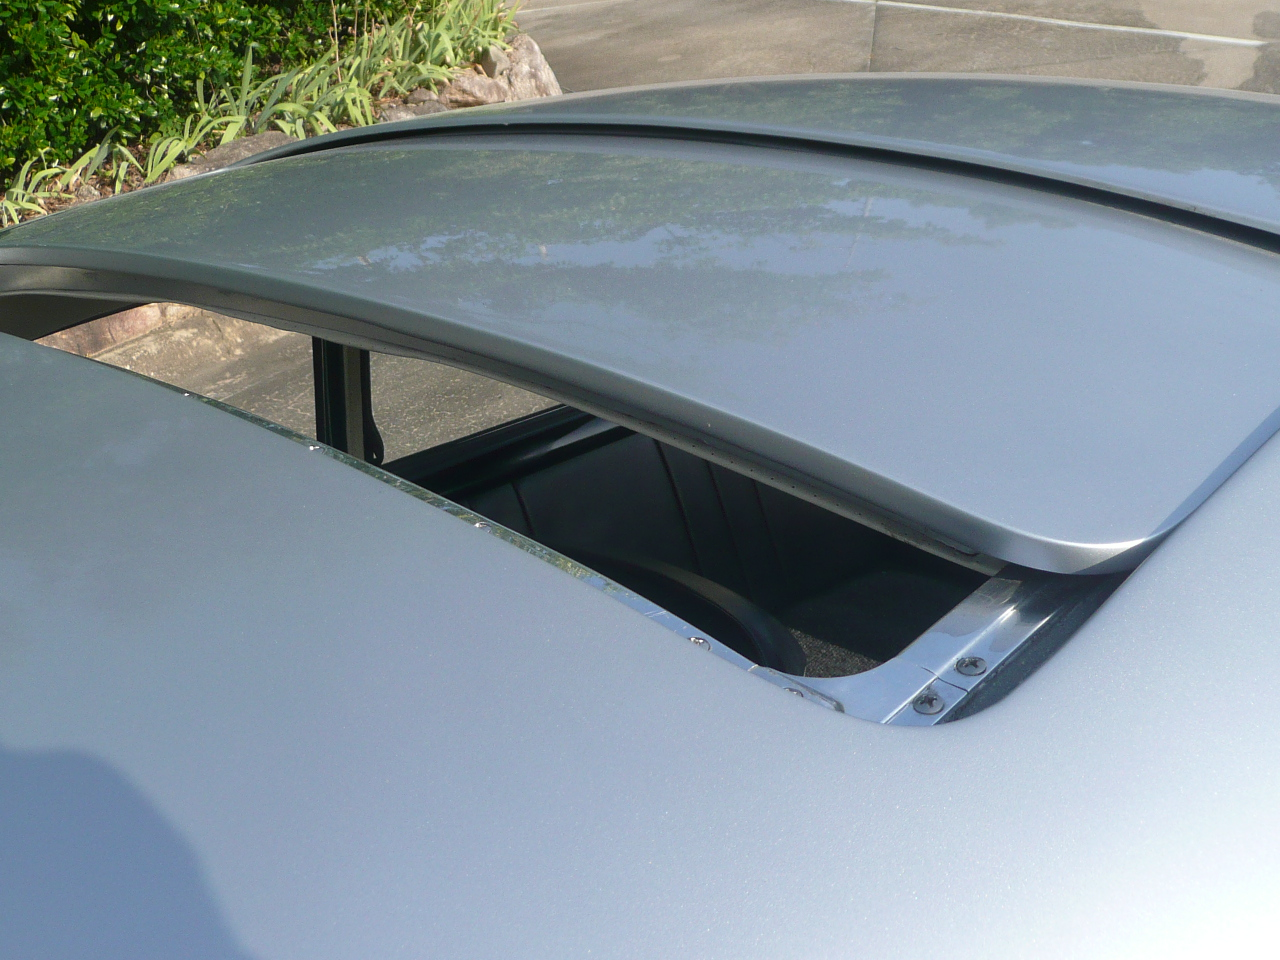 1960 Sunroof Super (72)